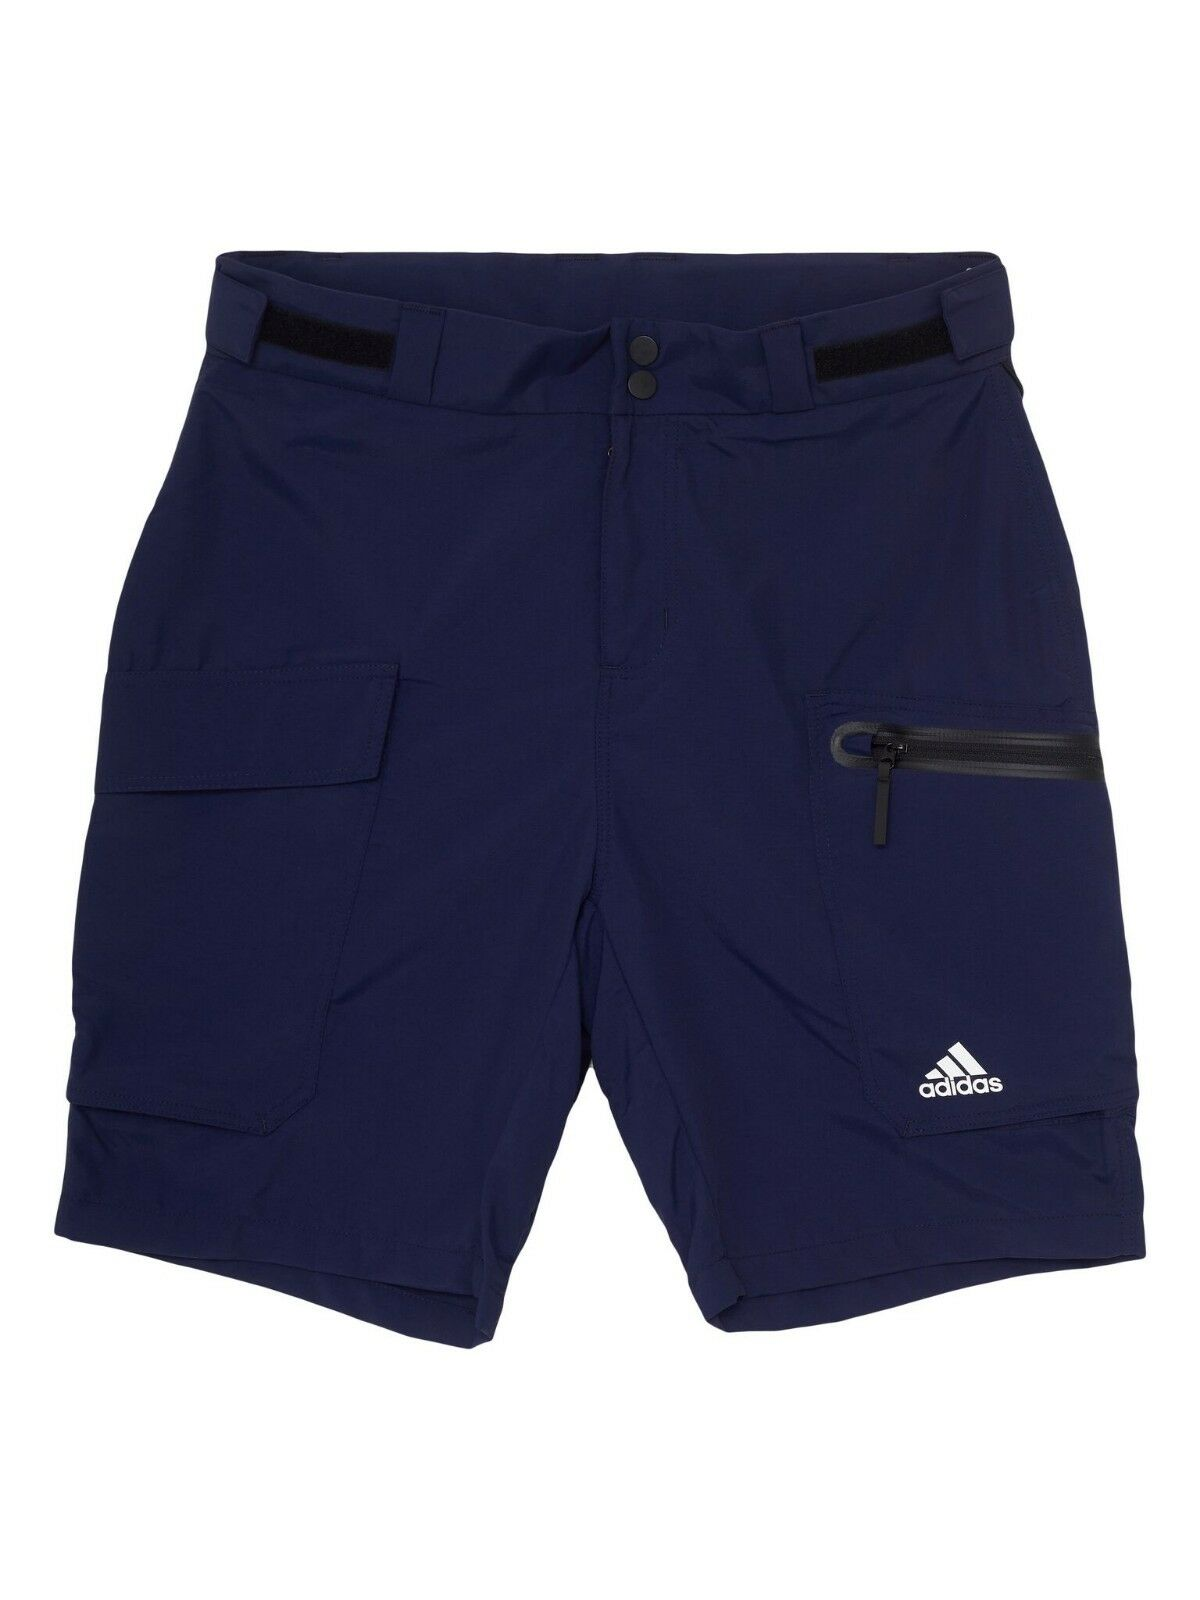 Adidas Sailing - Performance shorts